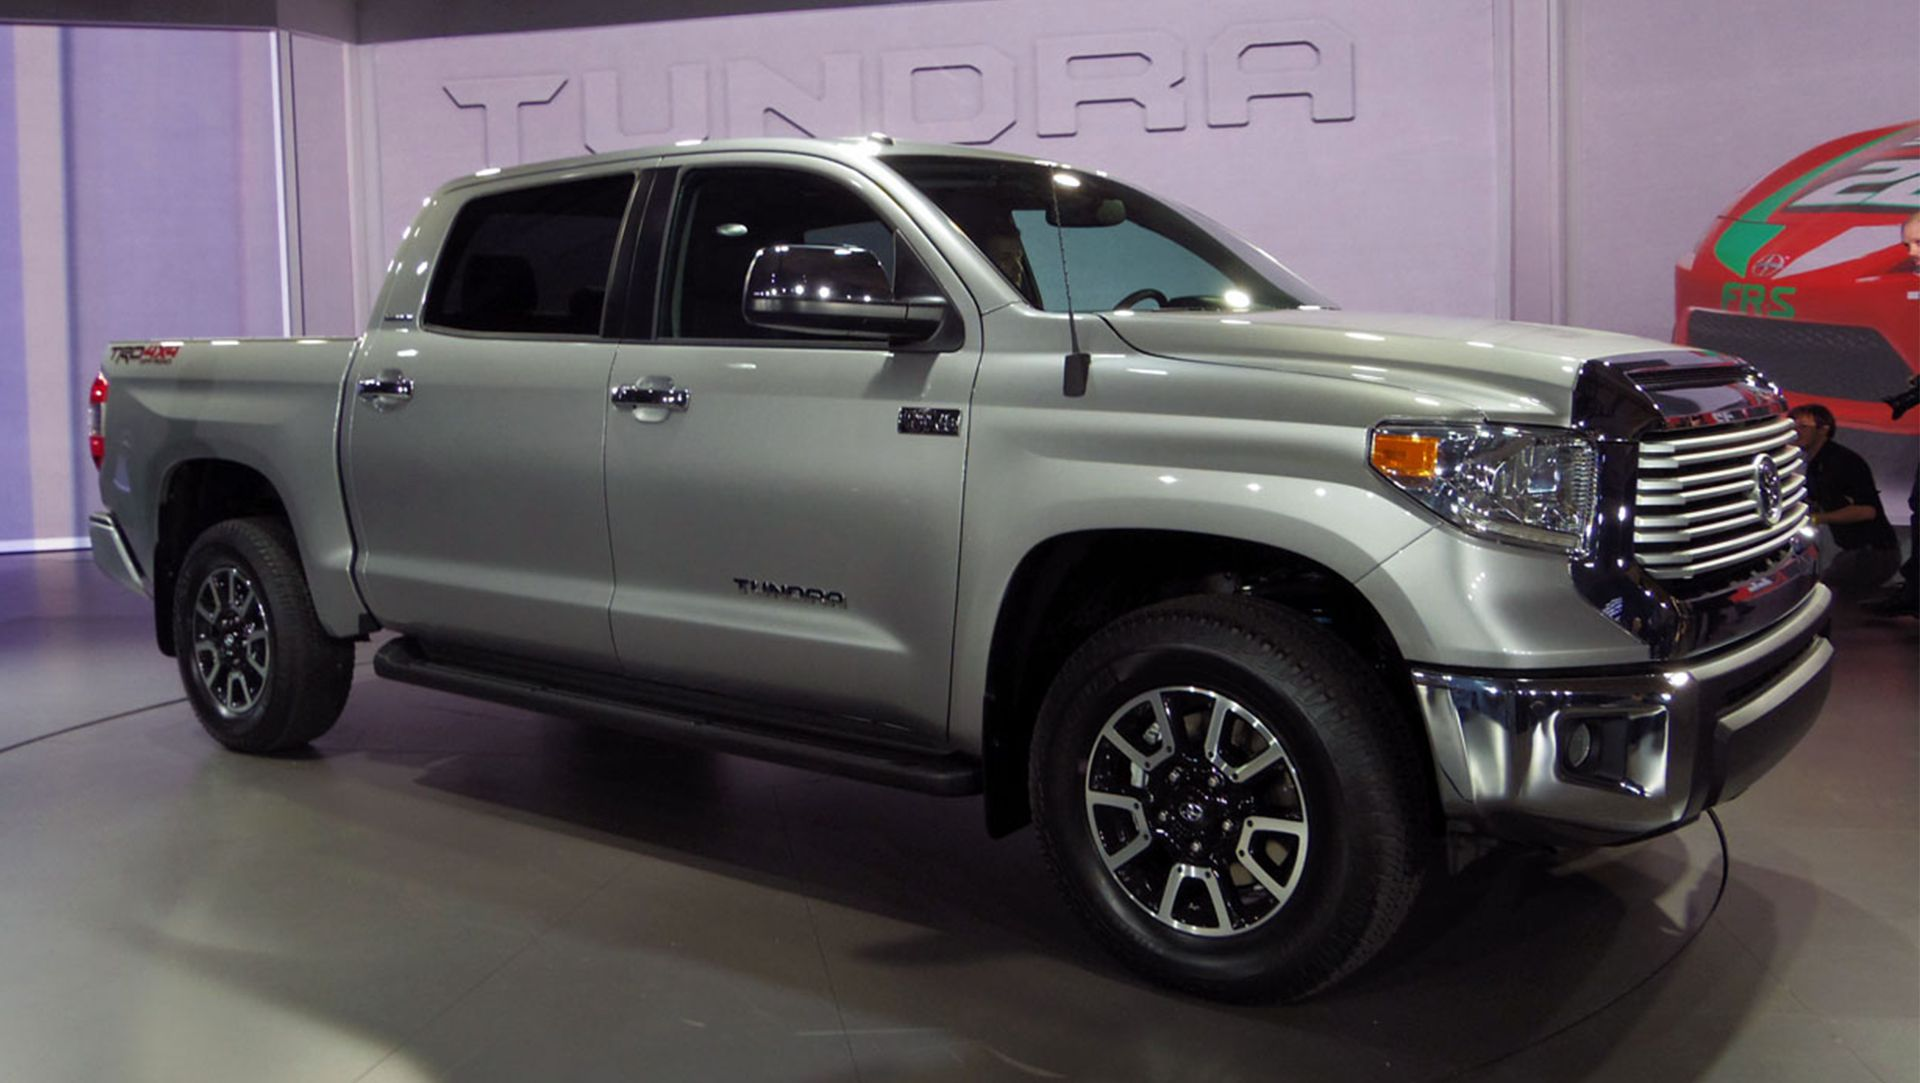 Cummins Diesel V8 Considered for Toyota Tundra Auto Moto